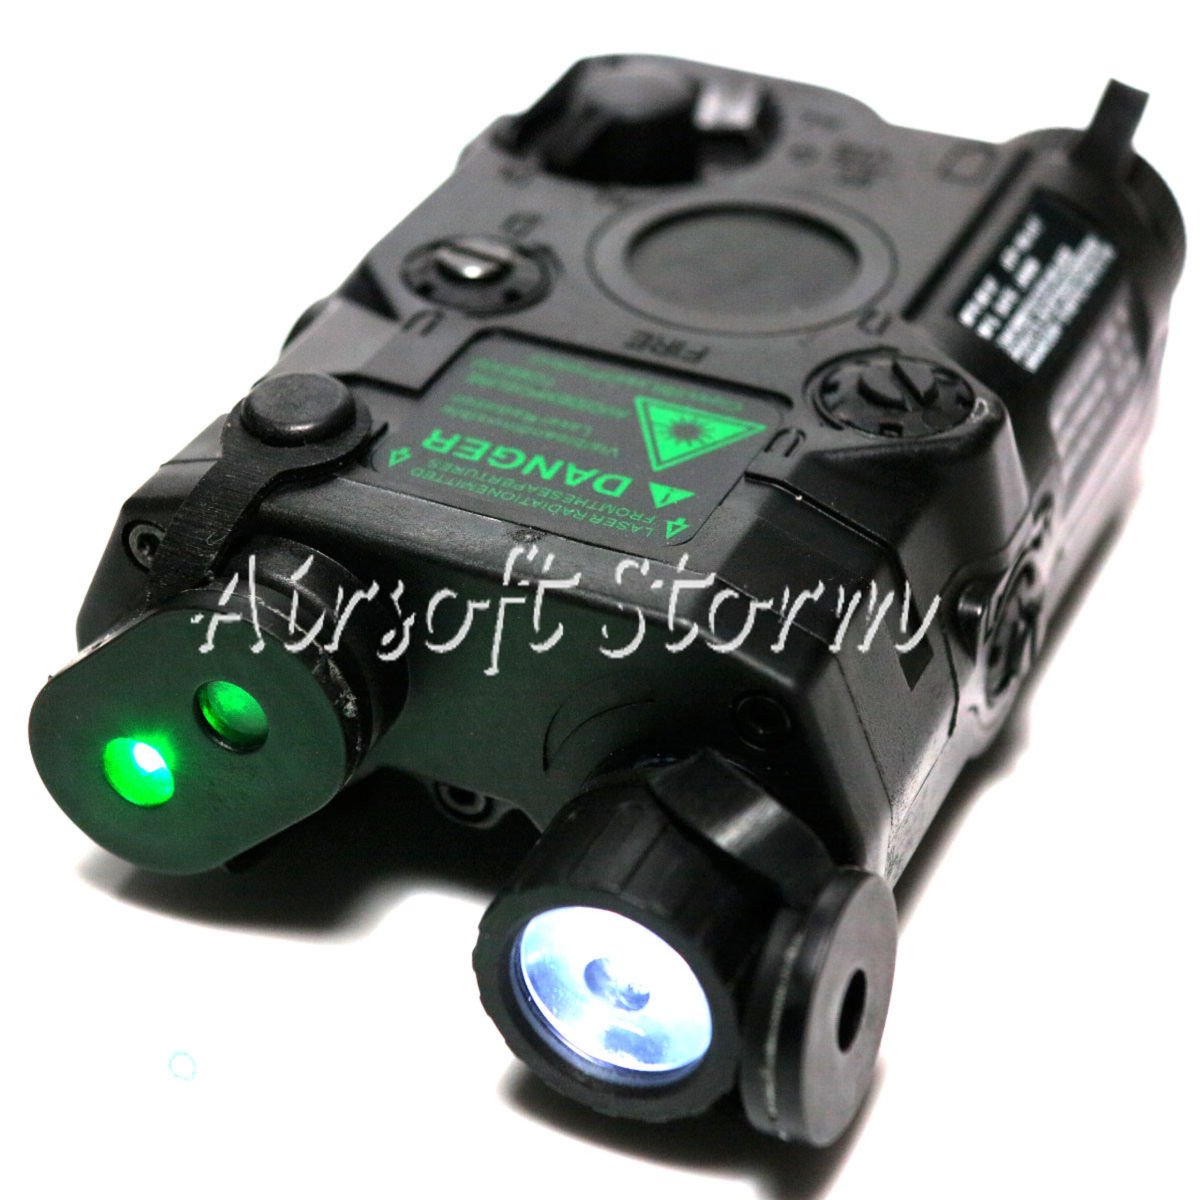 Tactical Gear FMA AN/PEQ-15 Green Dot Laser & LED Flashlight Black